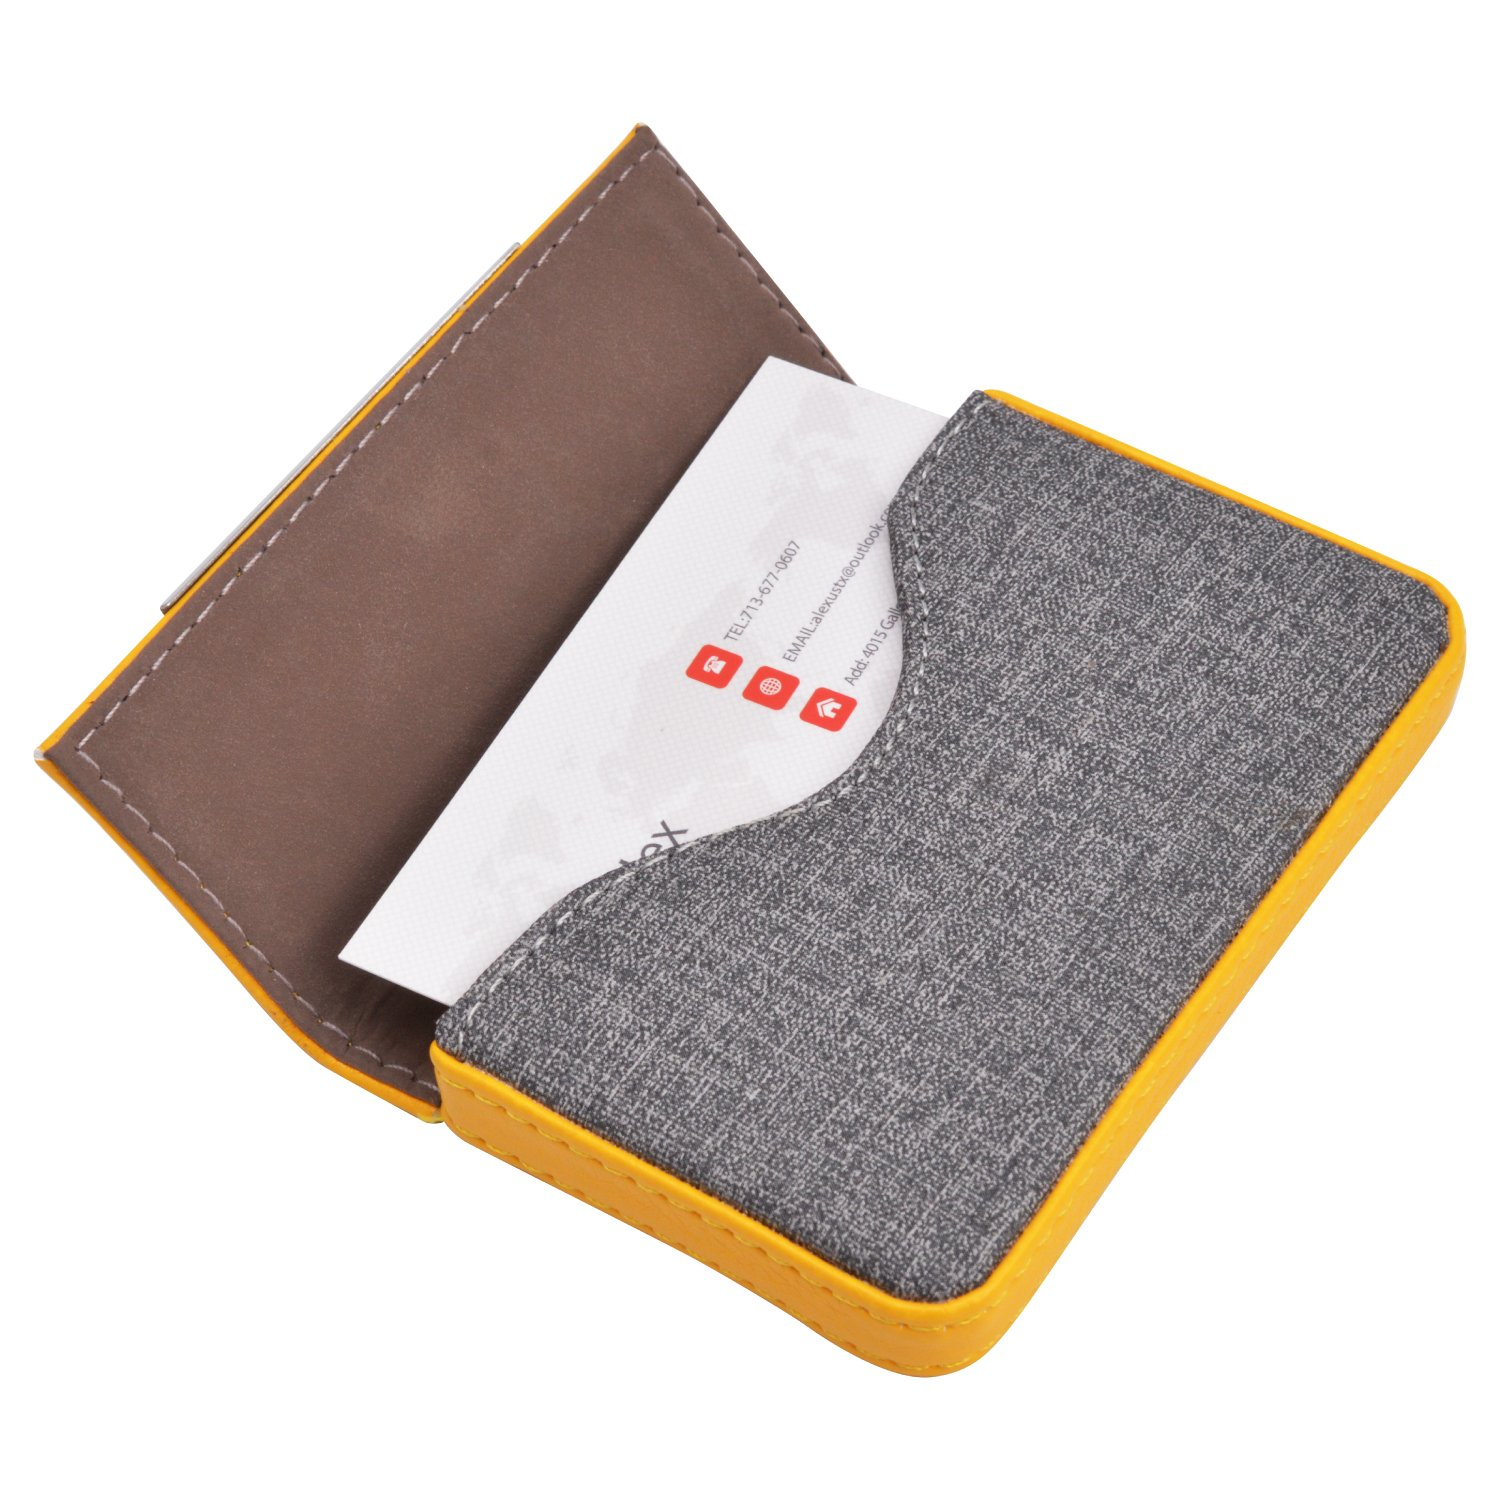 MaxGear Leather Business Card Case Fashion Business Card Holder with Magnetic Shut, Holds 25 Business Cards, Men Or Women Name Card Holder Case Yellow